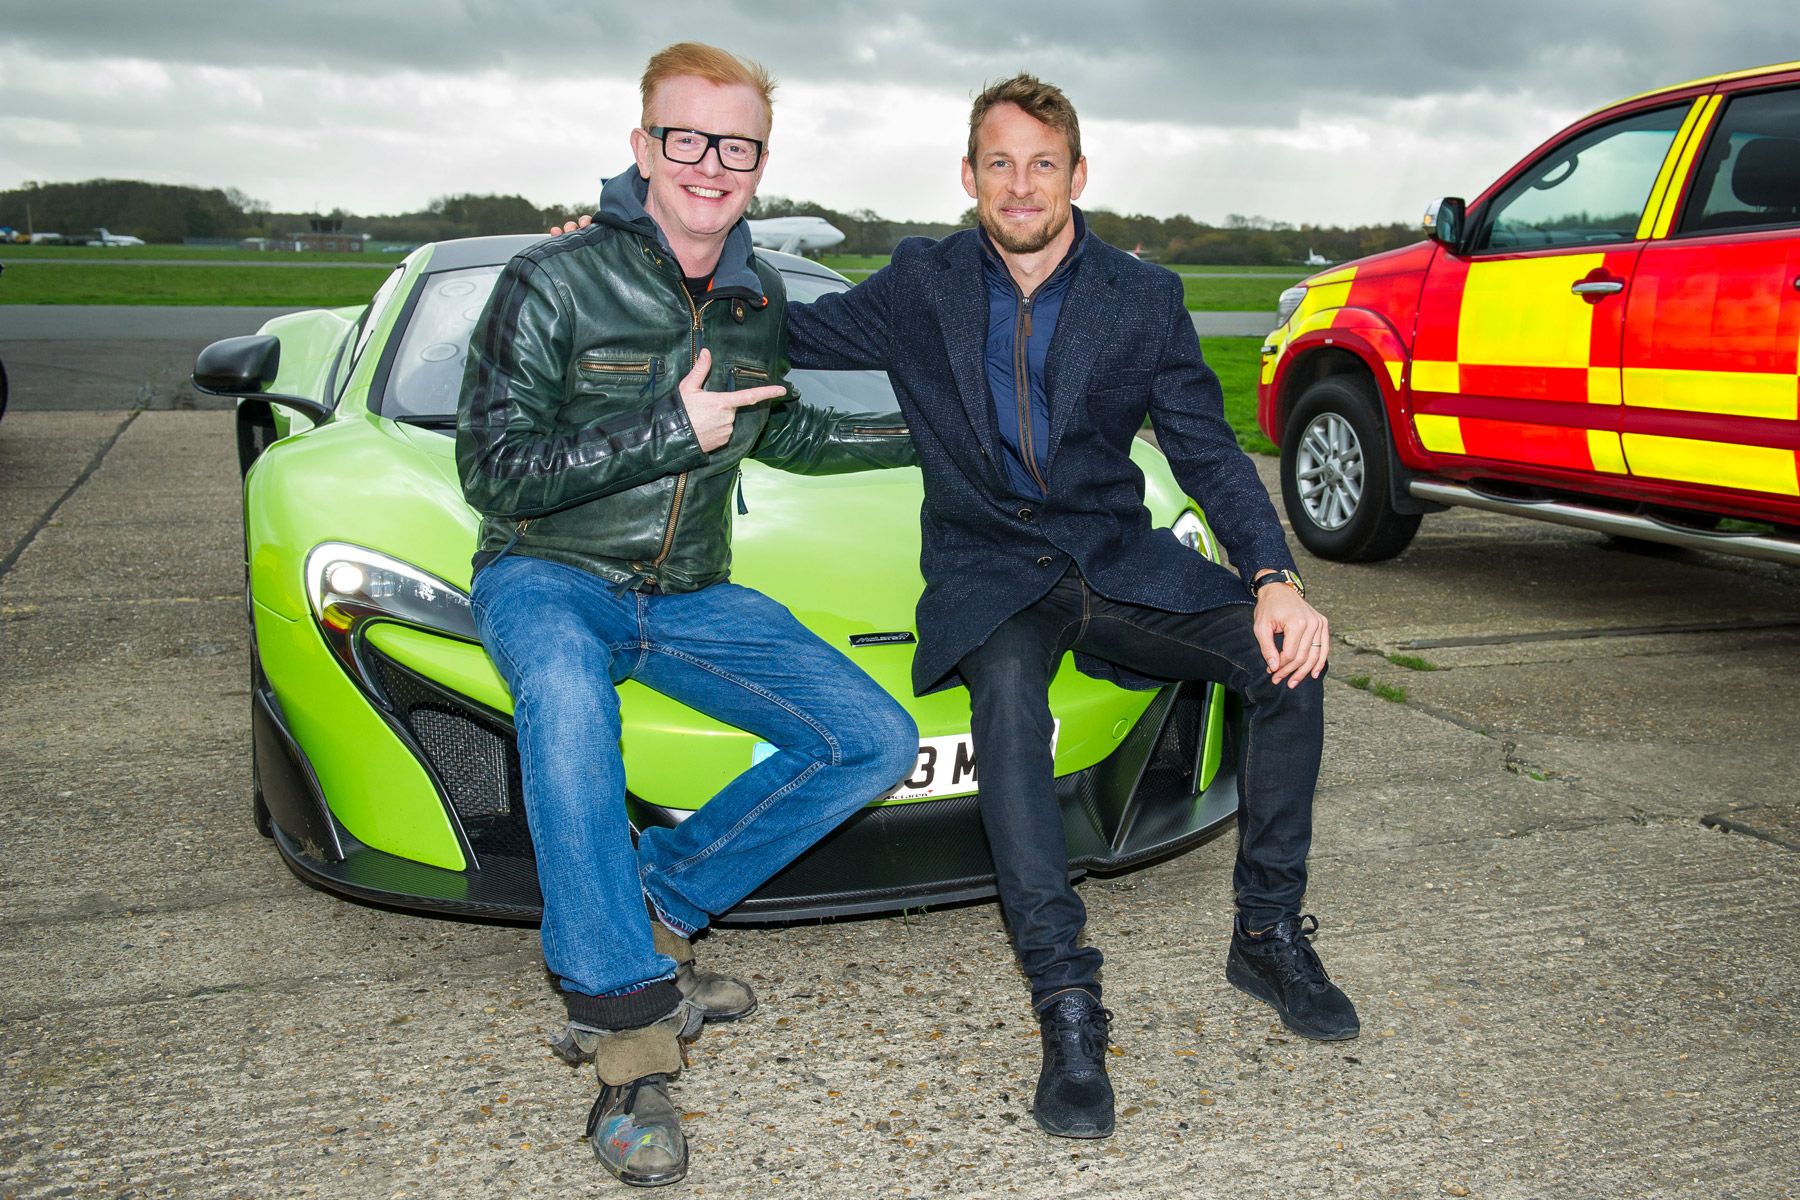 Sunday's Top Gear features a race with Seasick Steve, Tinie Tempah and Sharleen Spiteri